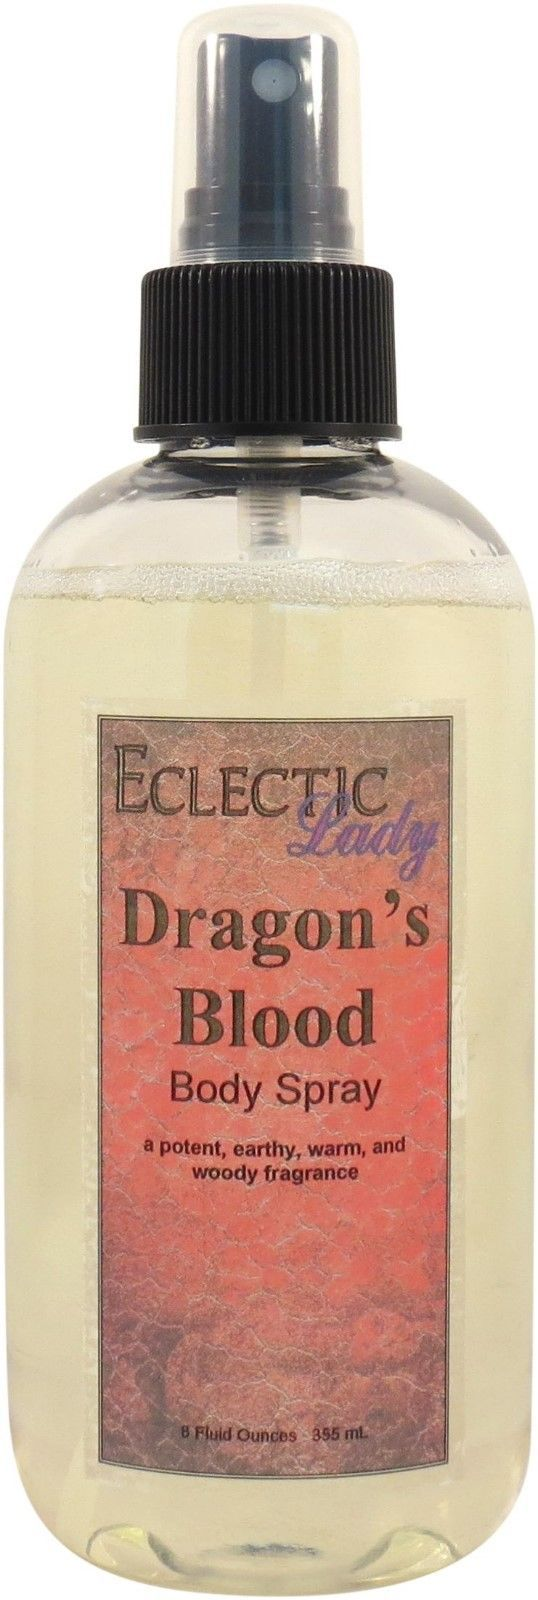 Dragon's Blood Body Spray